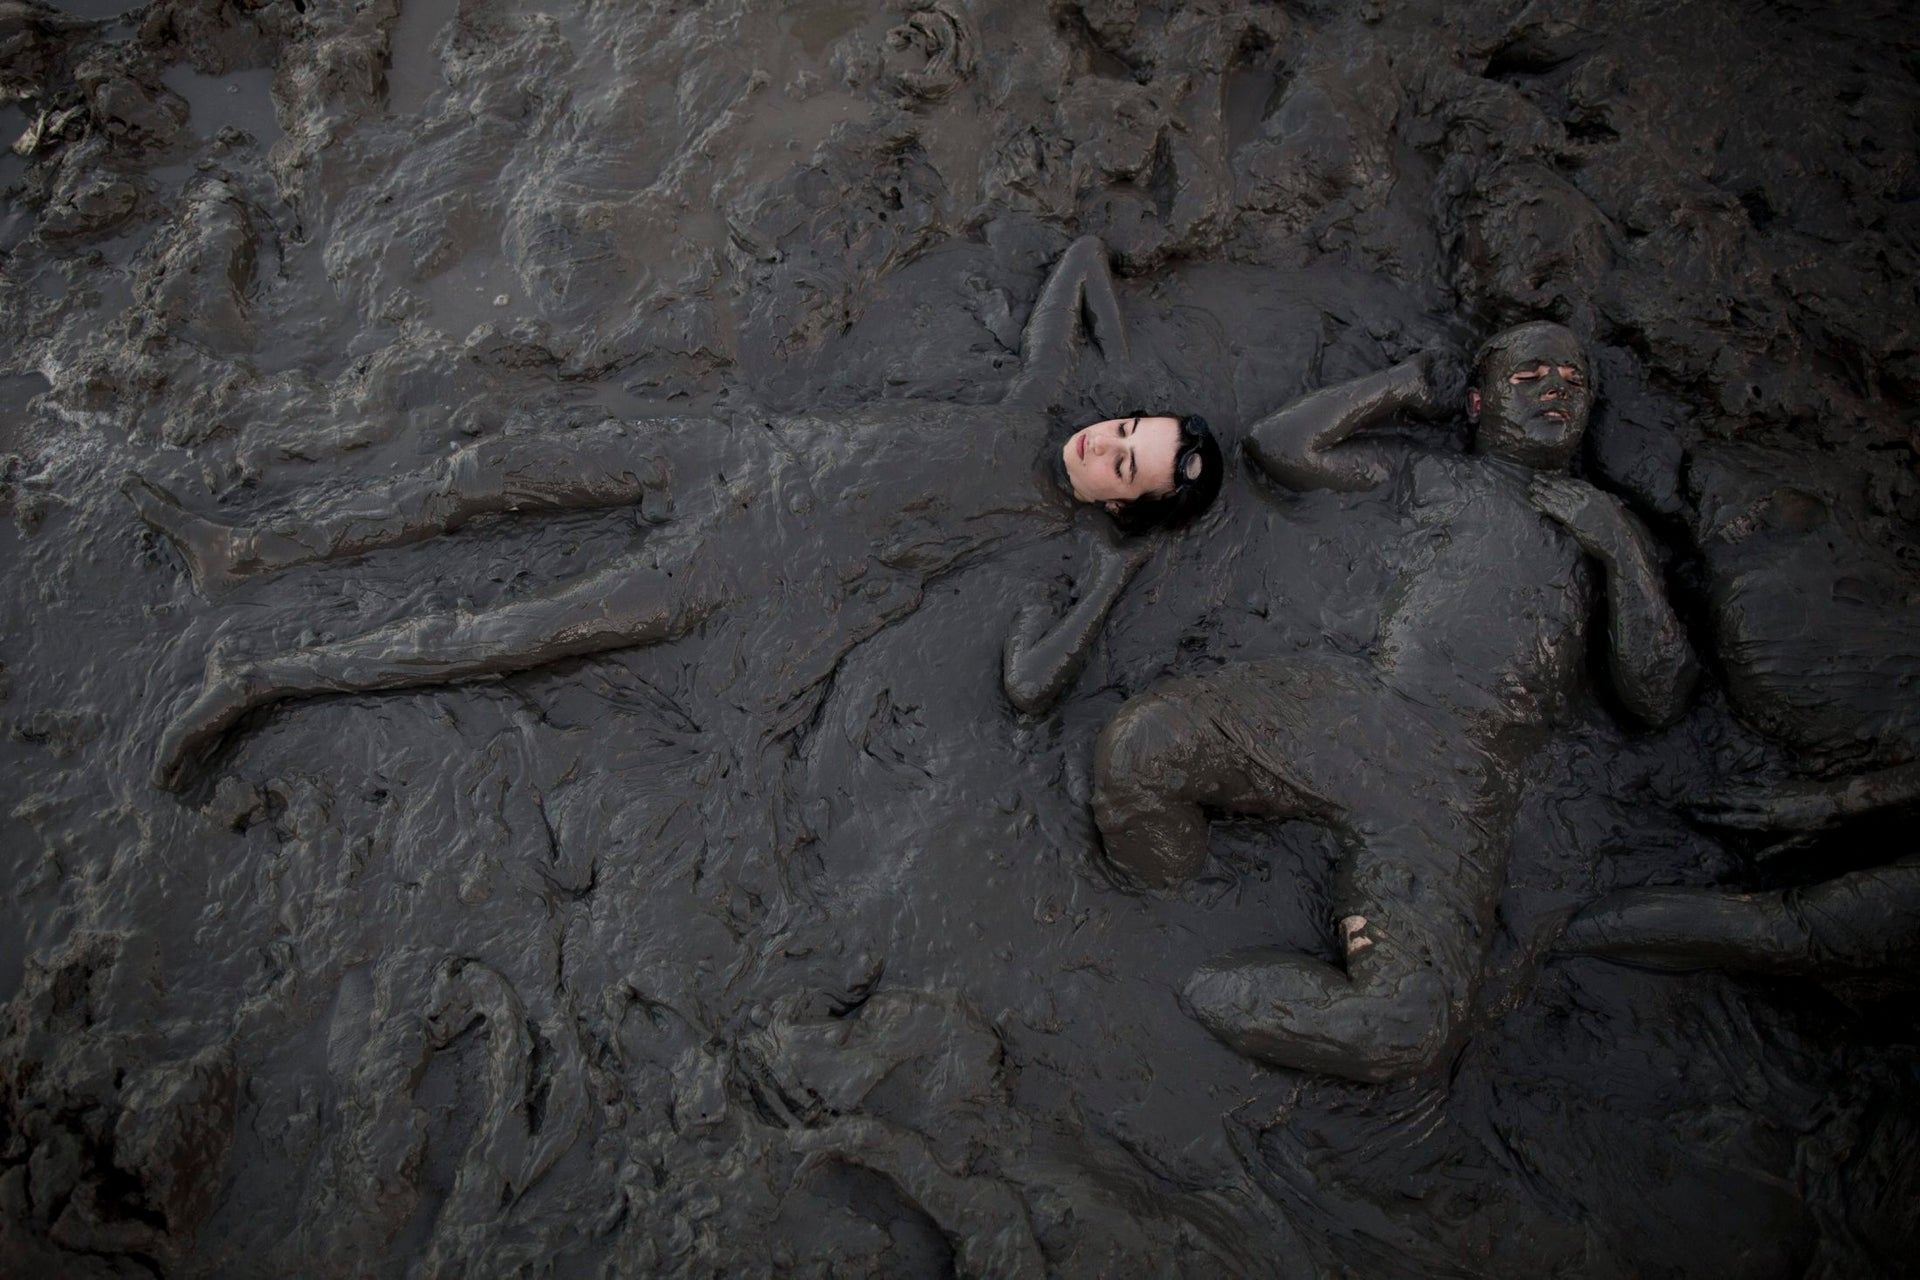 Ultra-Orthodox men covering themselves in mud during the Bein Hazemanim (literally, between the sessions - the Yeshivot vacation period) on one of the shores of the Dead Sea, designated exclusively to men. The Dead Sea mud is rich in diverse minerals and is considered to have numerous medical virtues.  The Dead Sea, 16 August 2016